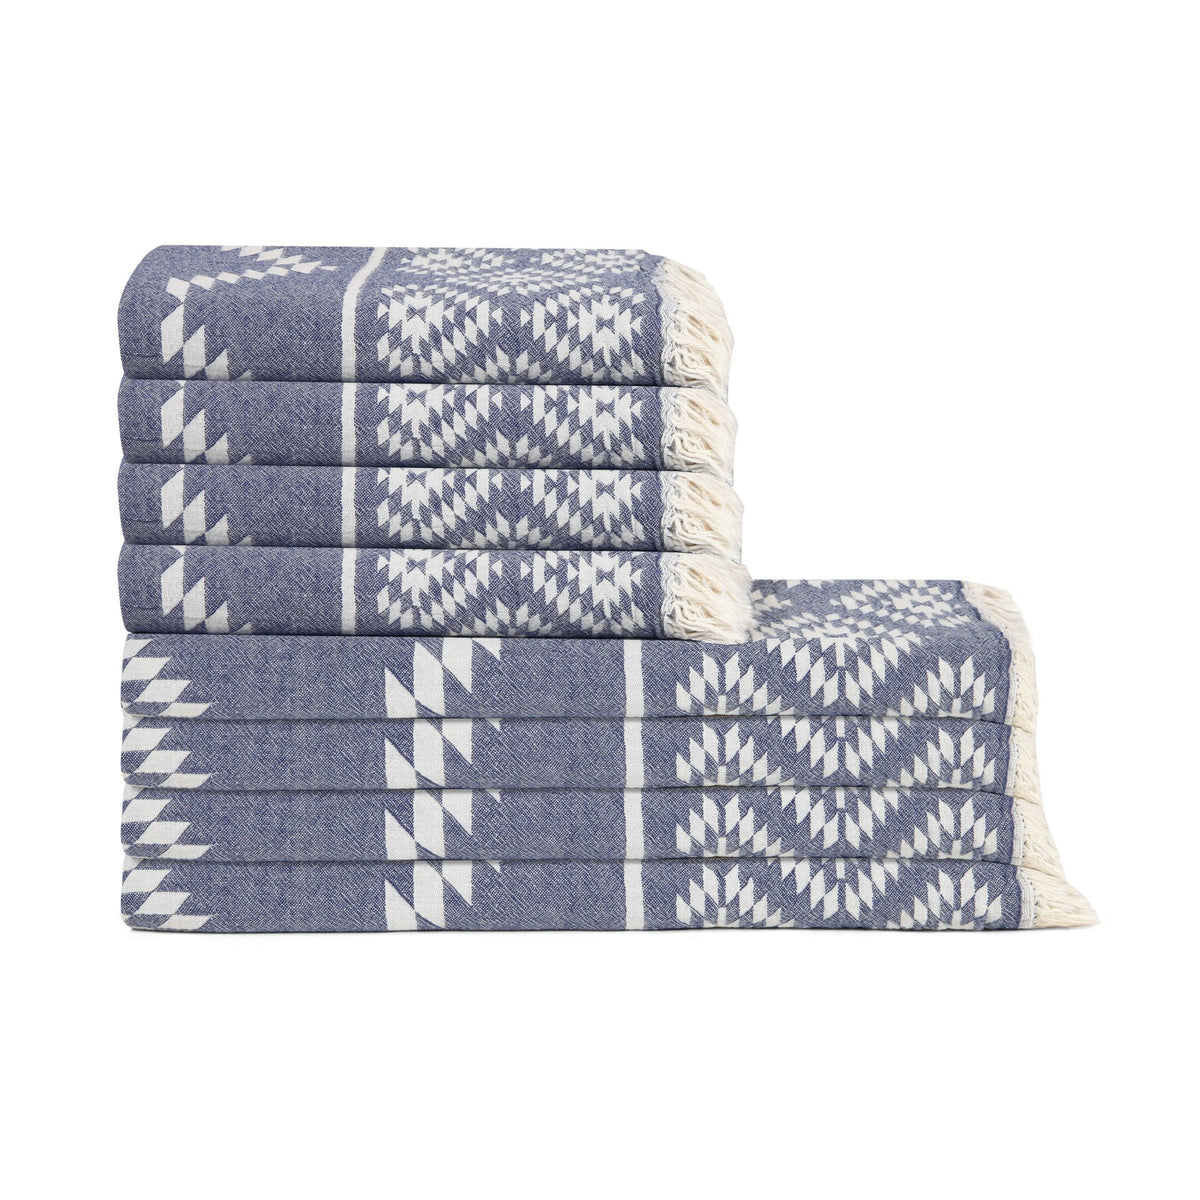 Aztec Turkish Towel Bundle